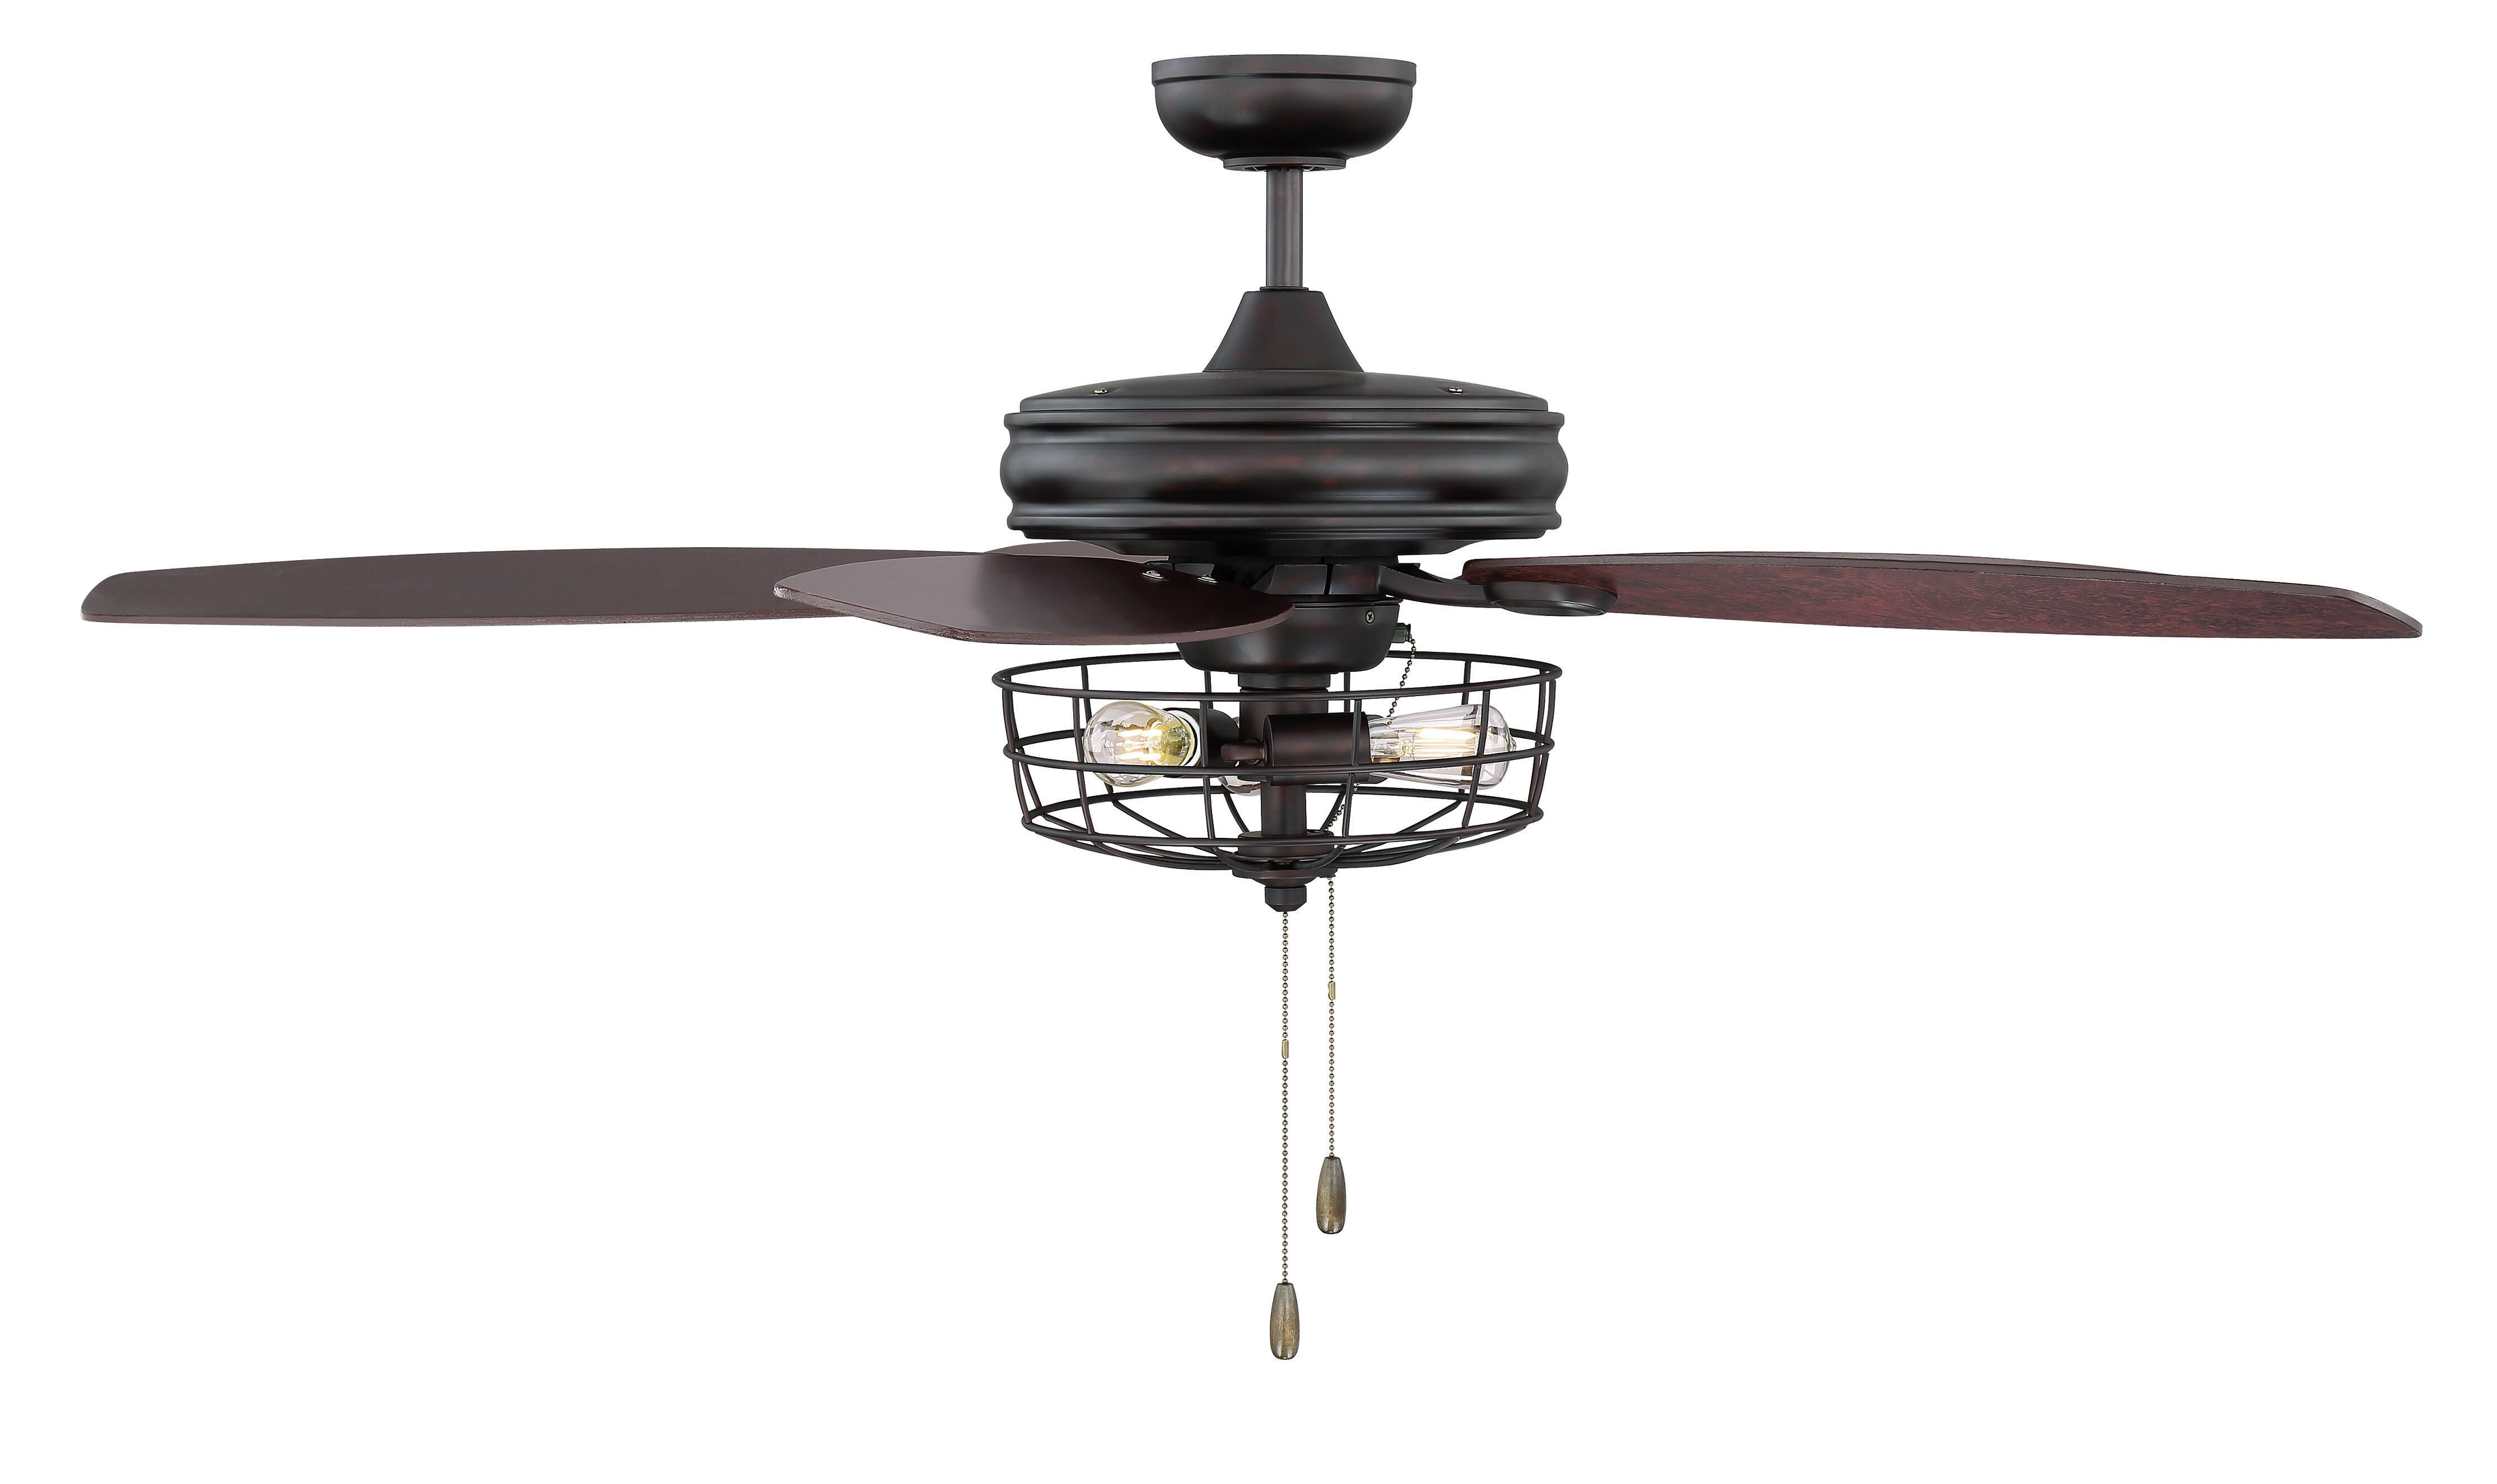 52 Glenpool 5 Blade Caged Ceiling Fan With Pull Chain And Light Kit Included Reviews Joss Main